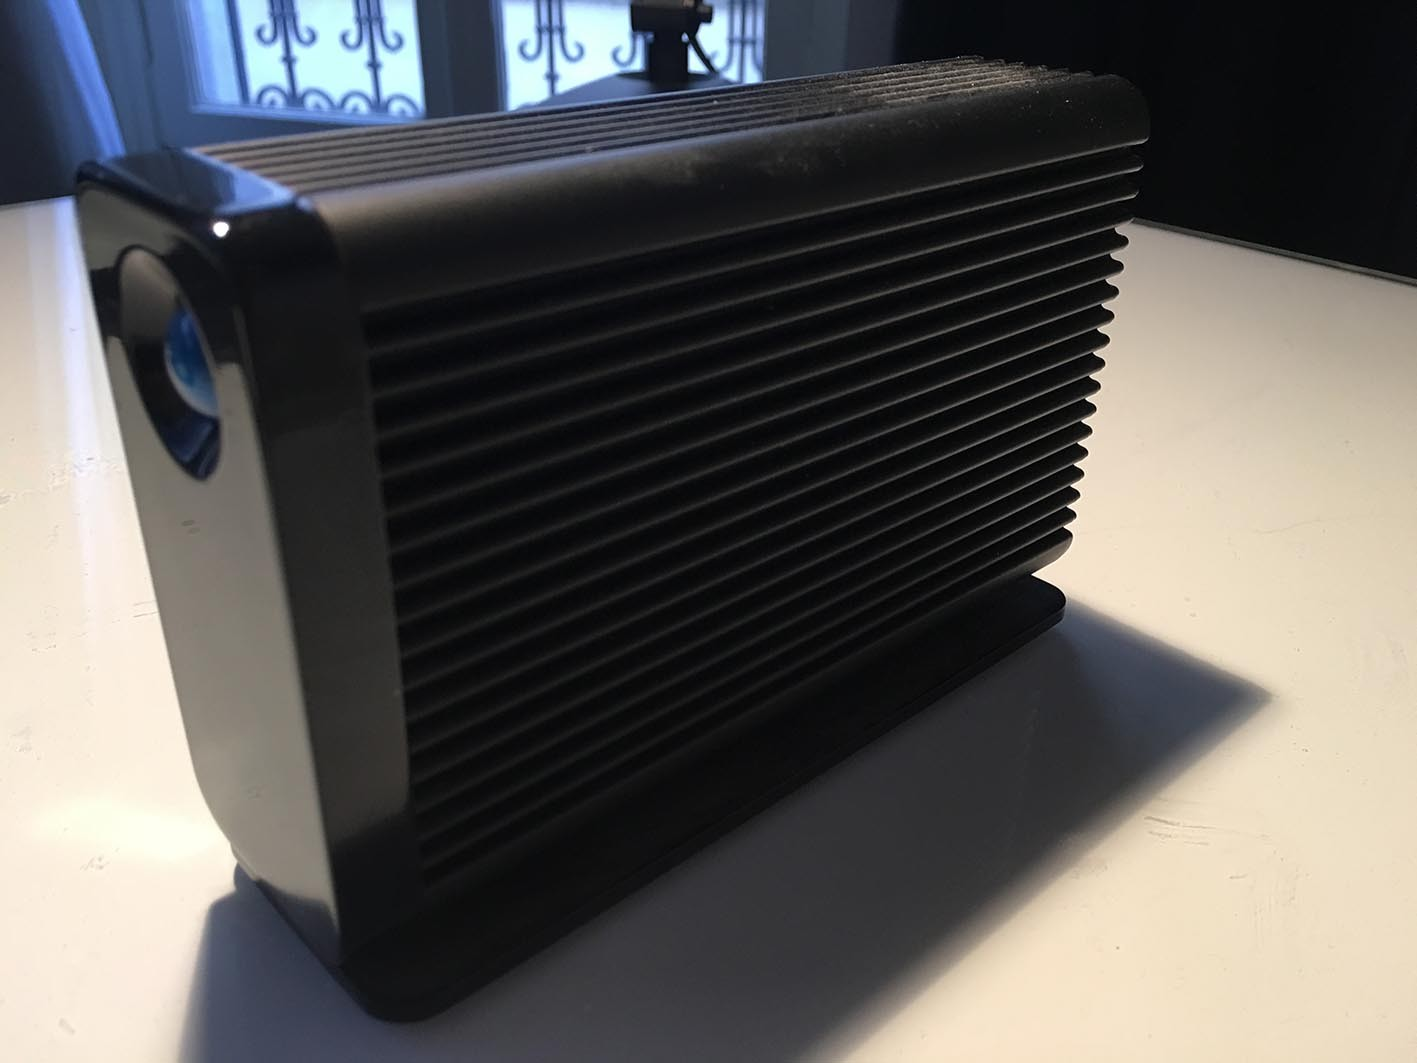 Vends Lacie Little Big Disk 1 To SSD Thunderbolt 2